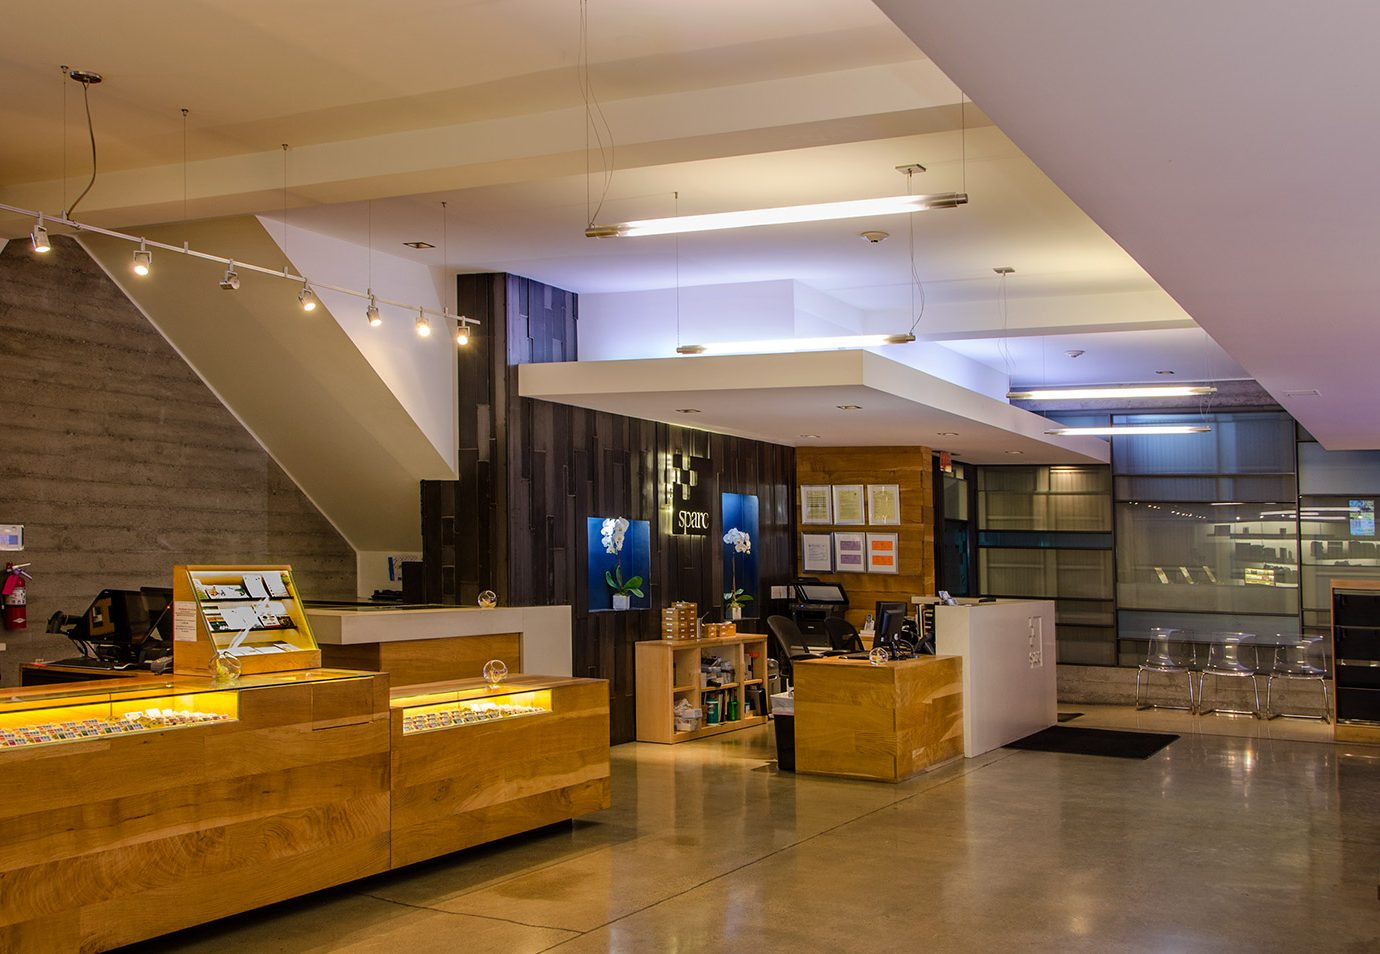 Interior of SPARC in San Francisco